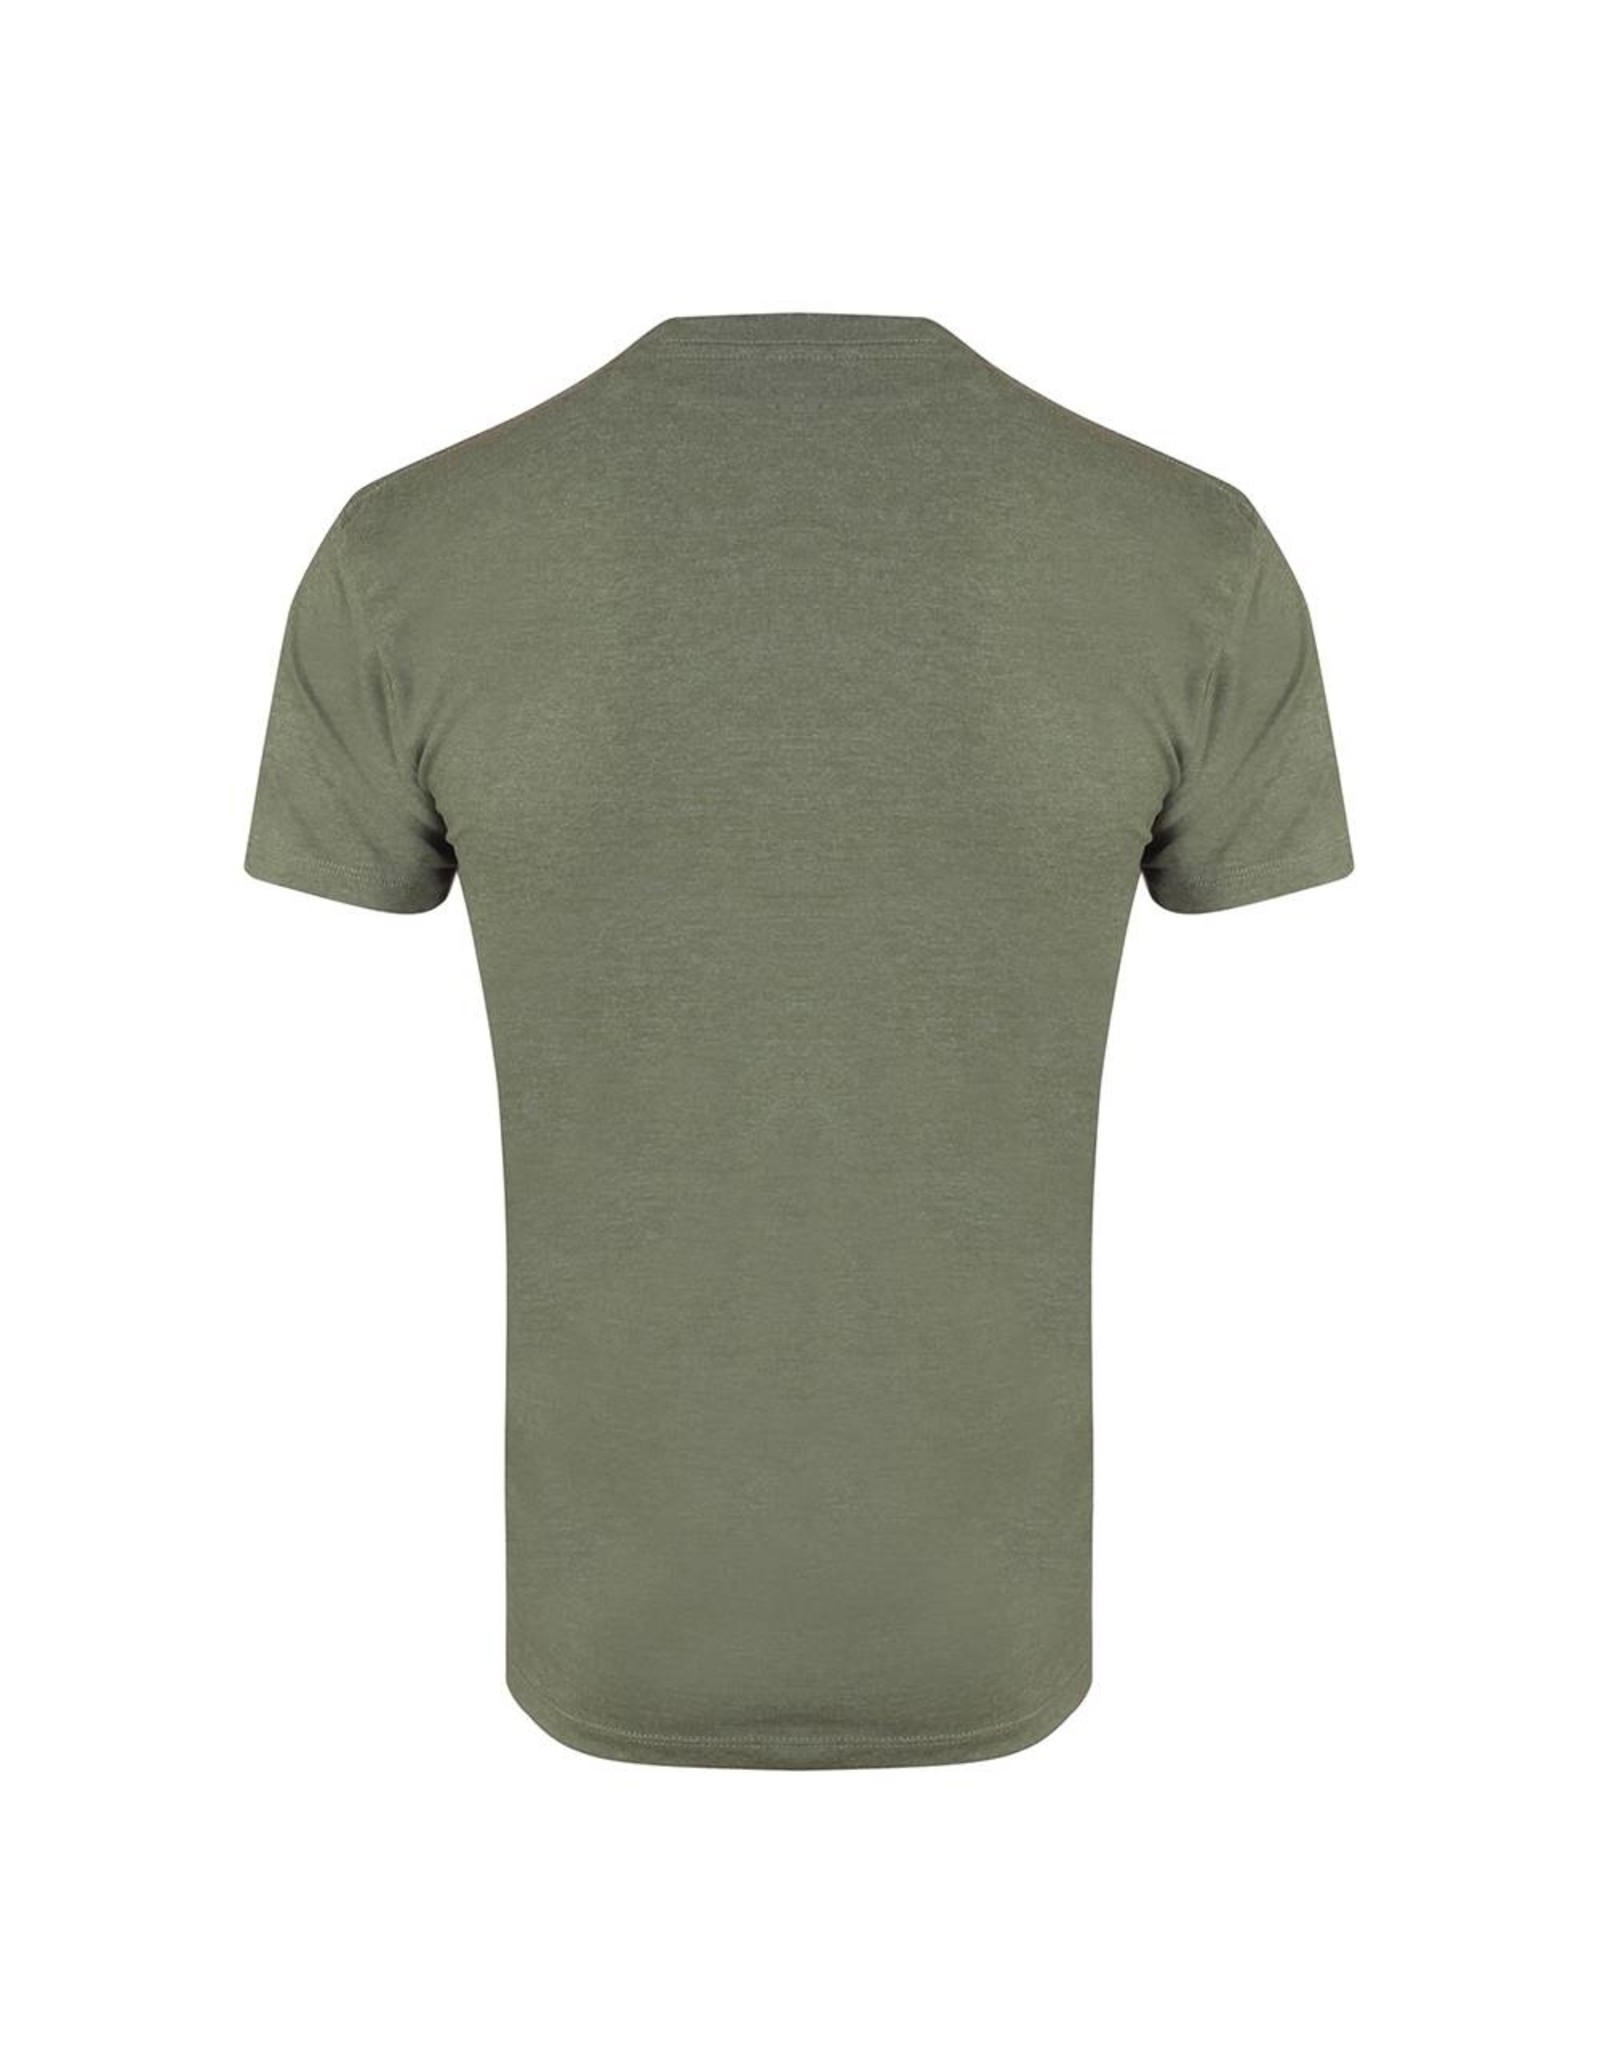 Gold's Gym Crew Neck T-shirt with Large Muscle Joe Print - Army